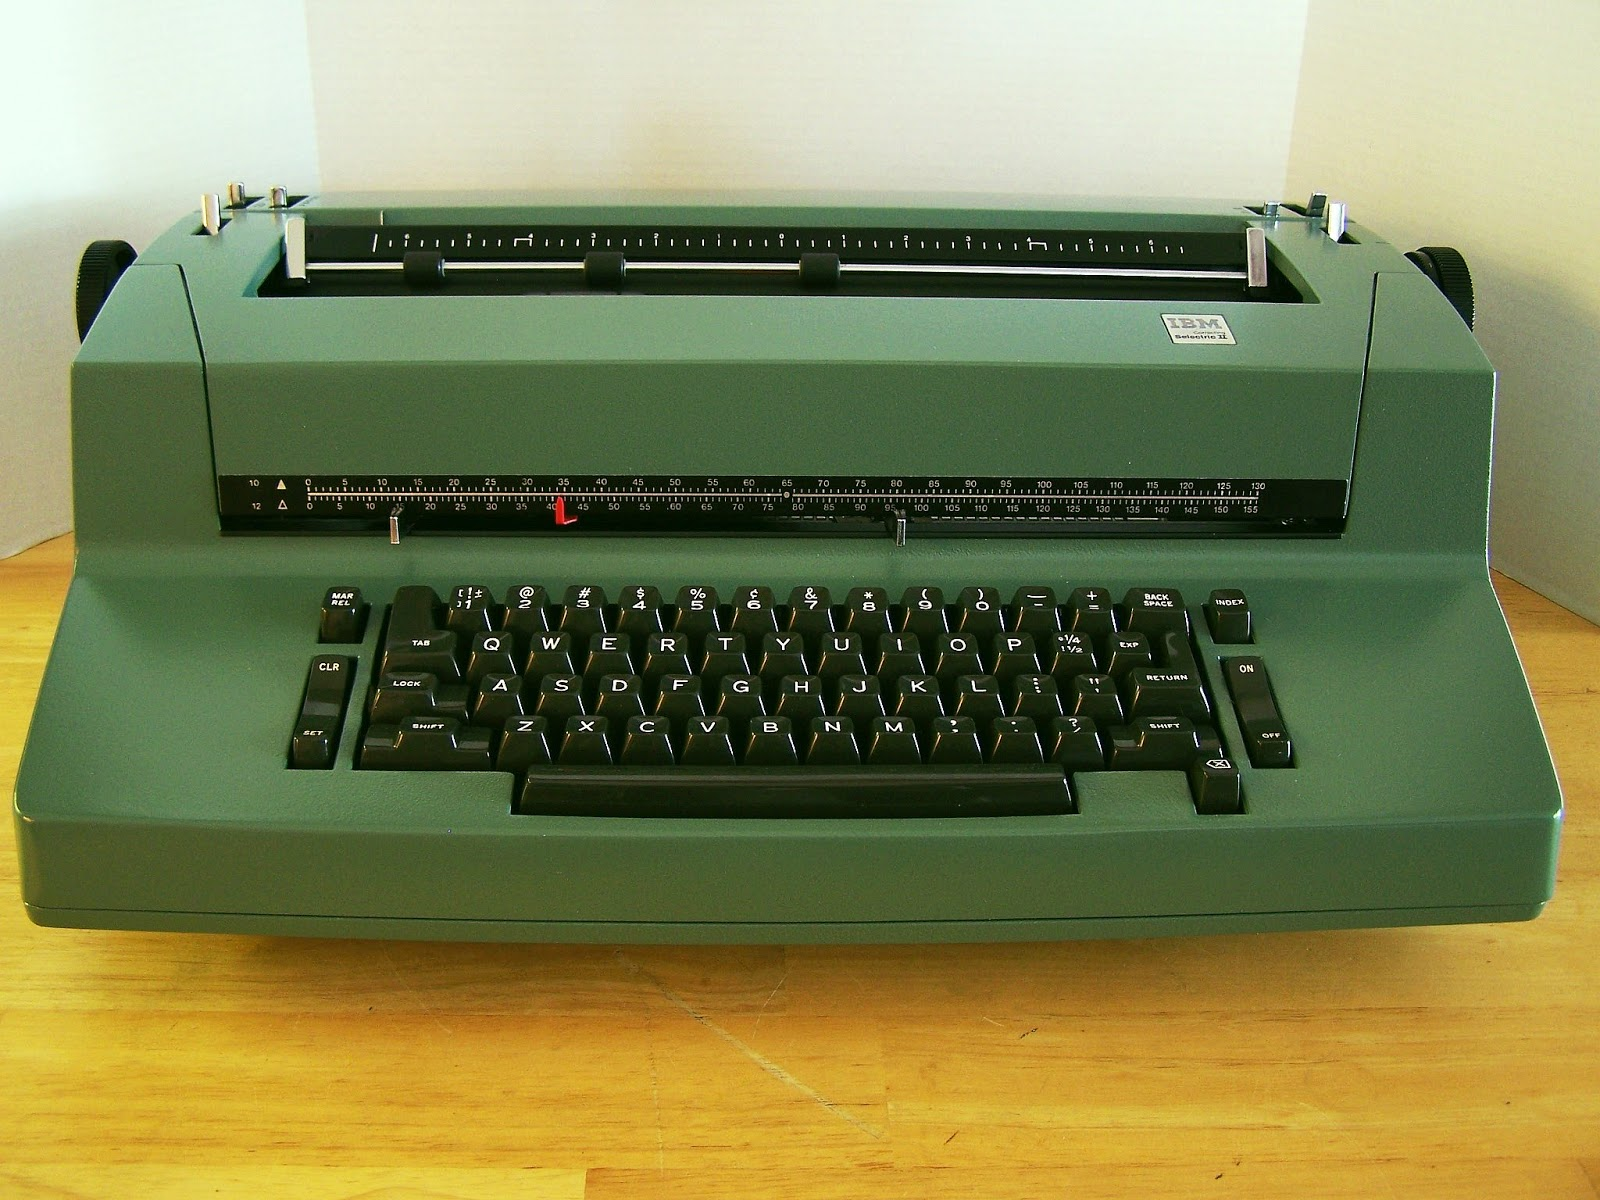 Ibm selectric parts and adjustment manual